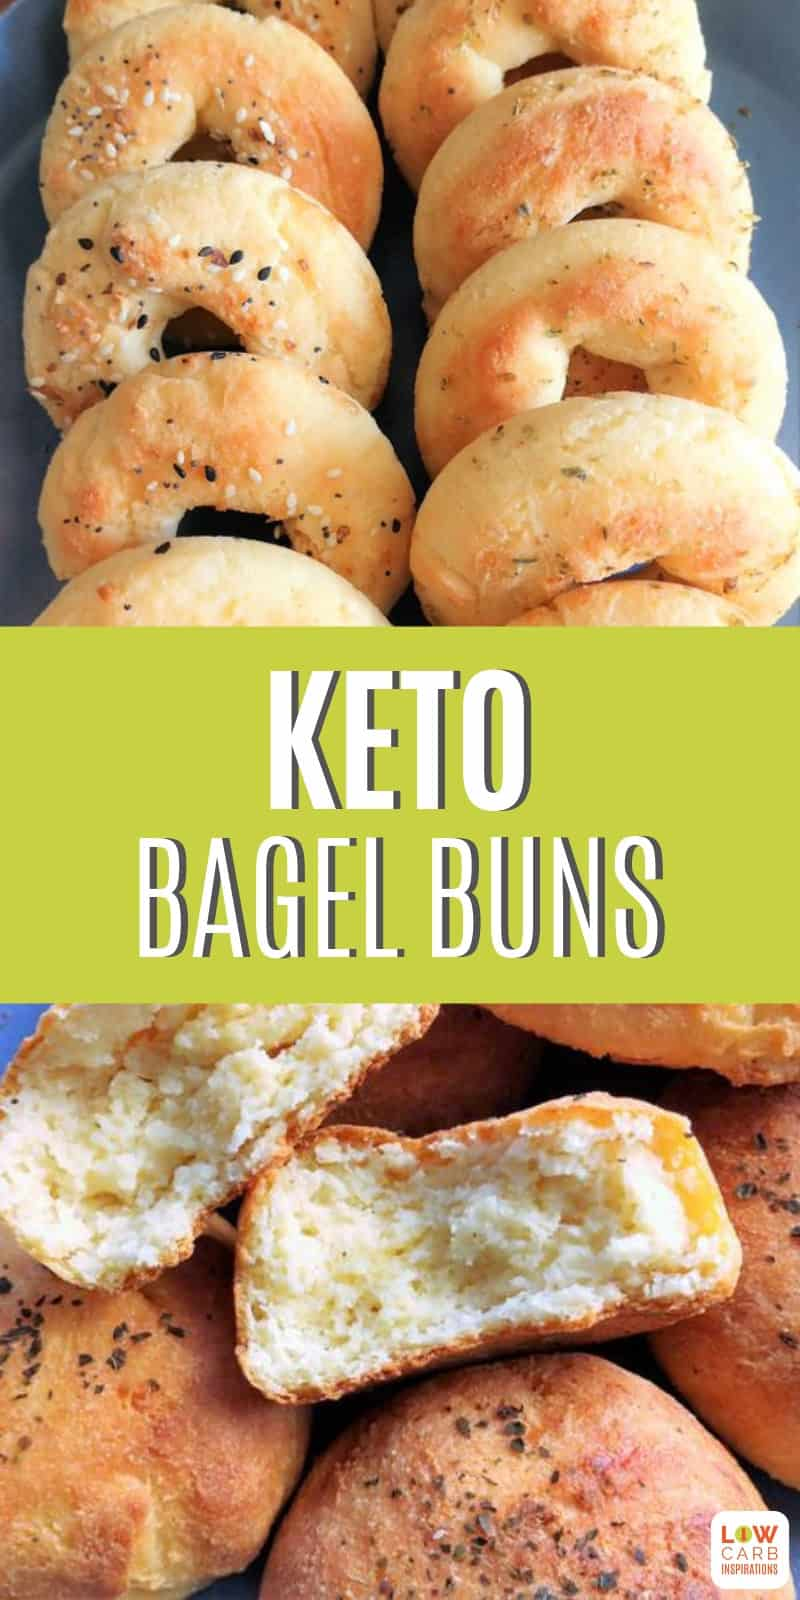 This keto bagel bun with yeast recipe surpasses all the rest, with an amazing texture and delicious bread flavor! These are not eggy or too cheesy, being just what you'll crave for a fantastic bread side added to any meal.